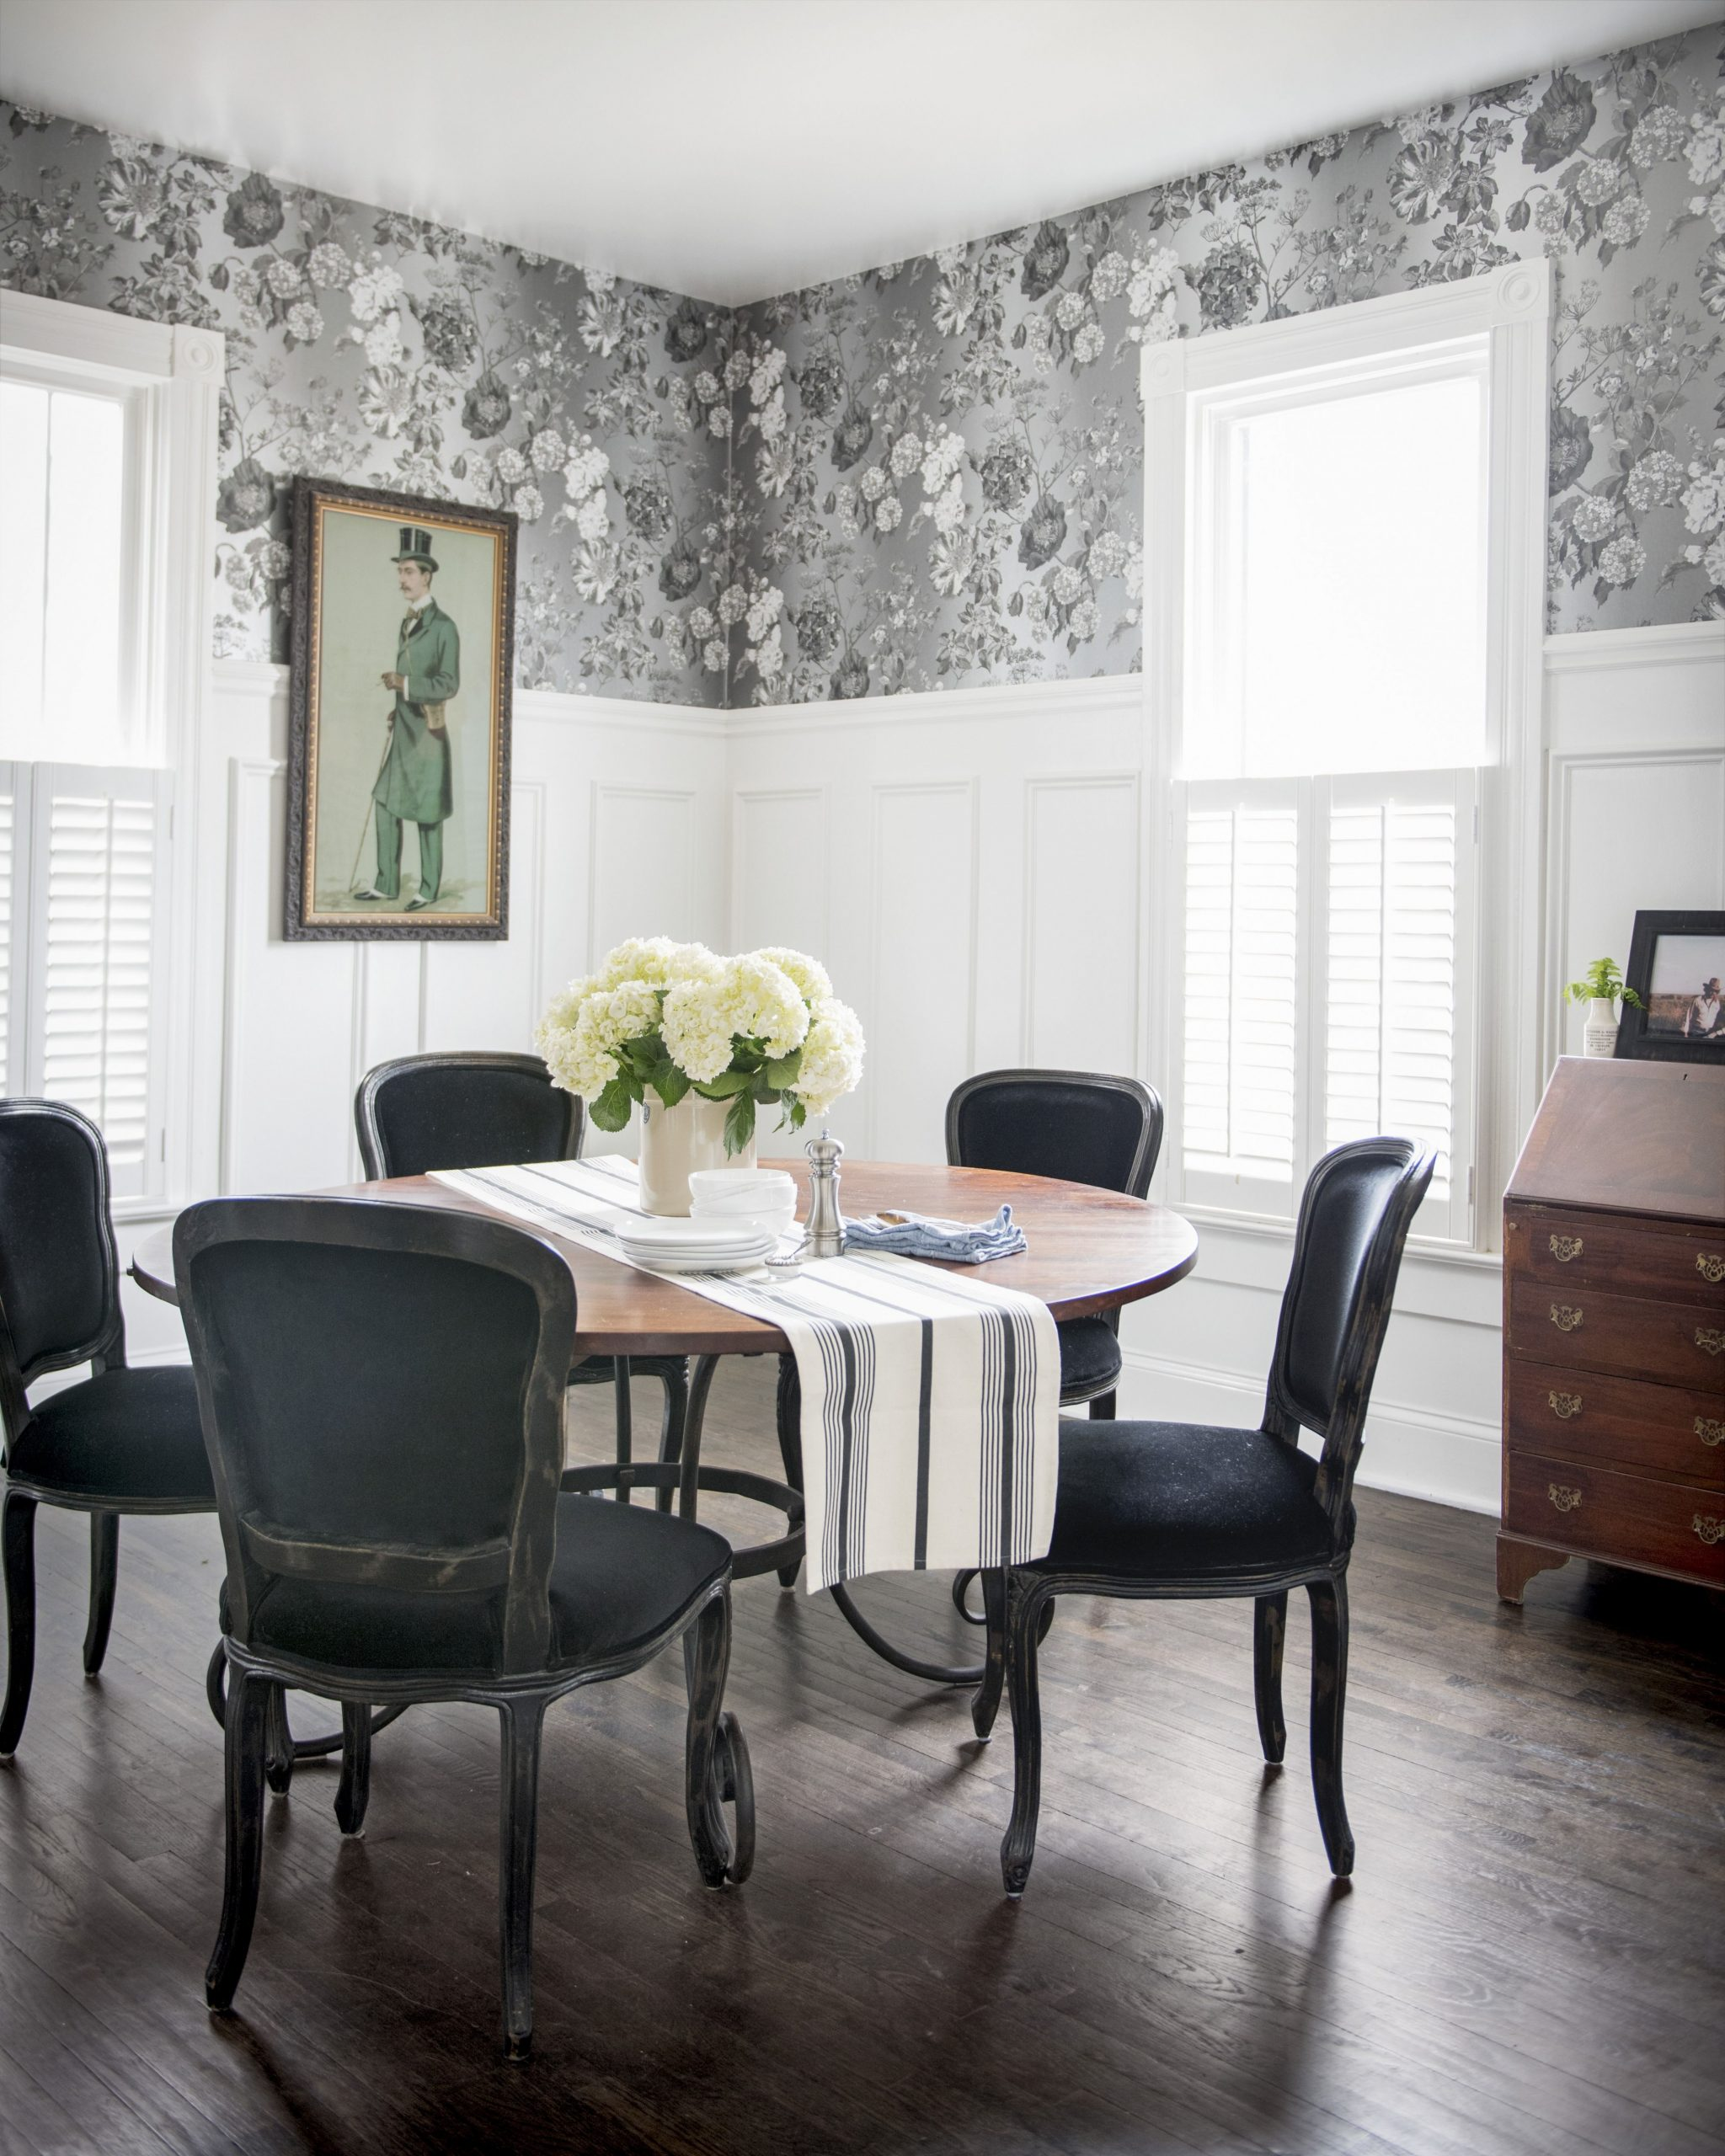 9 Best Dining Room Decorating Ideas - Pictures of Dining Room Decor - Decorating Your Dining Room Ideas